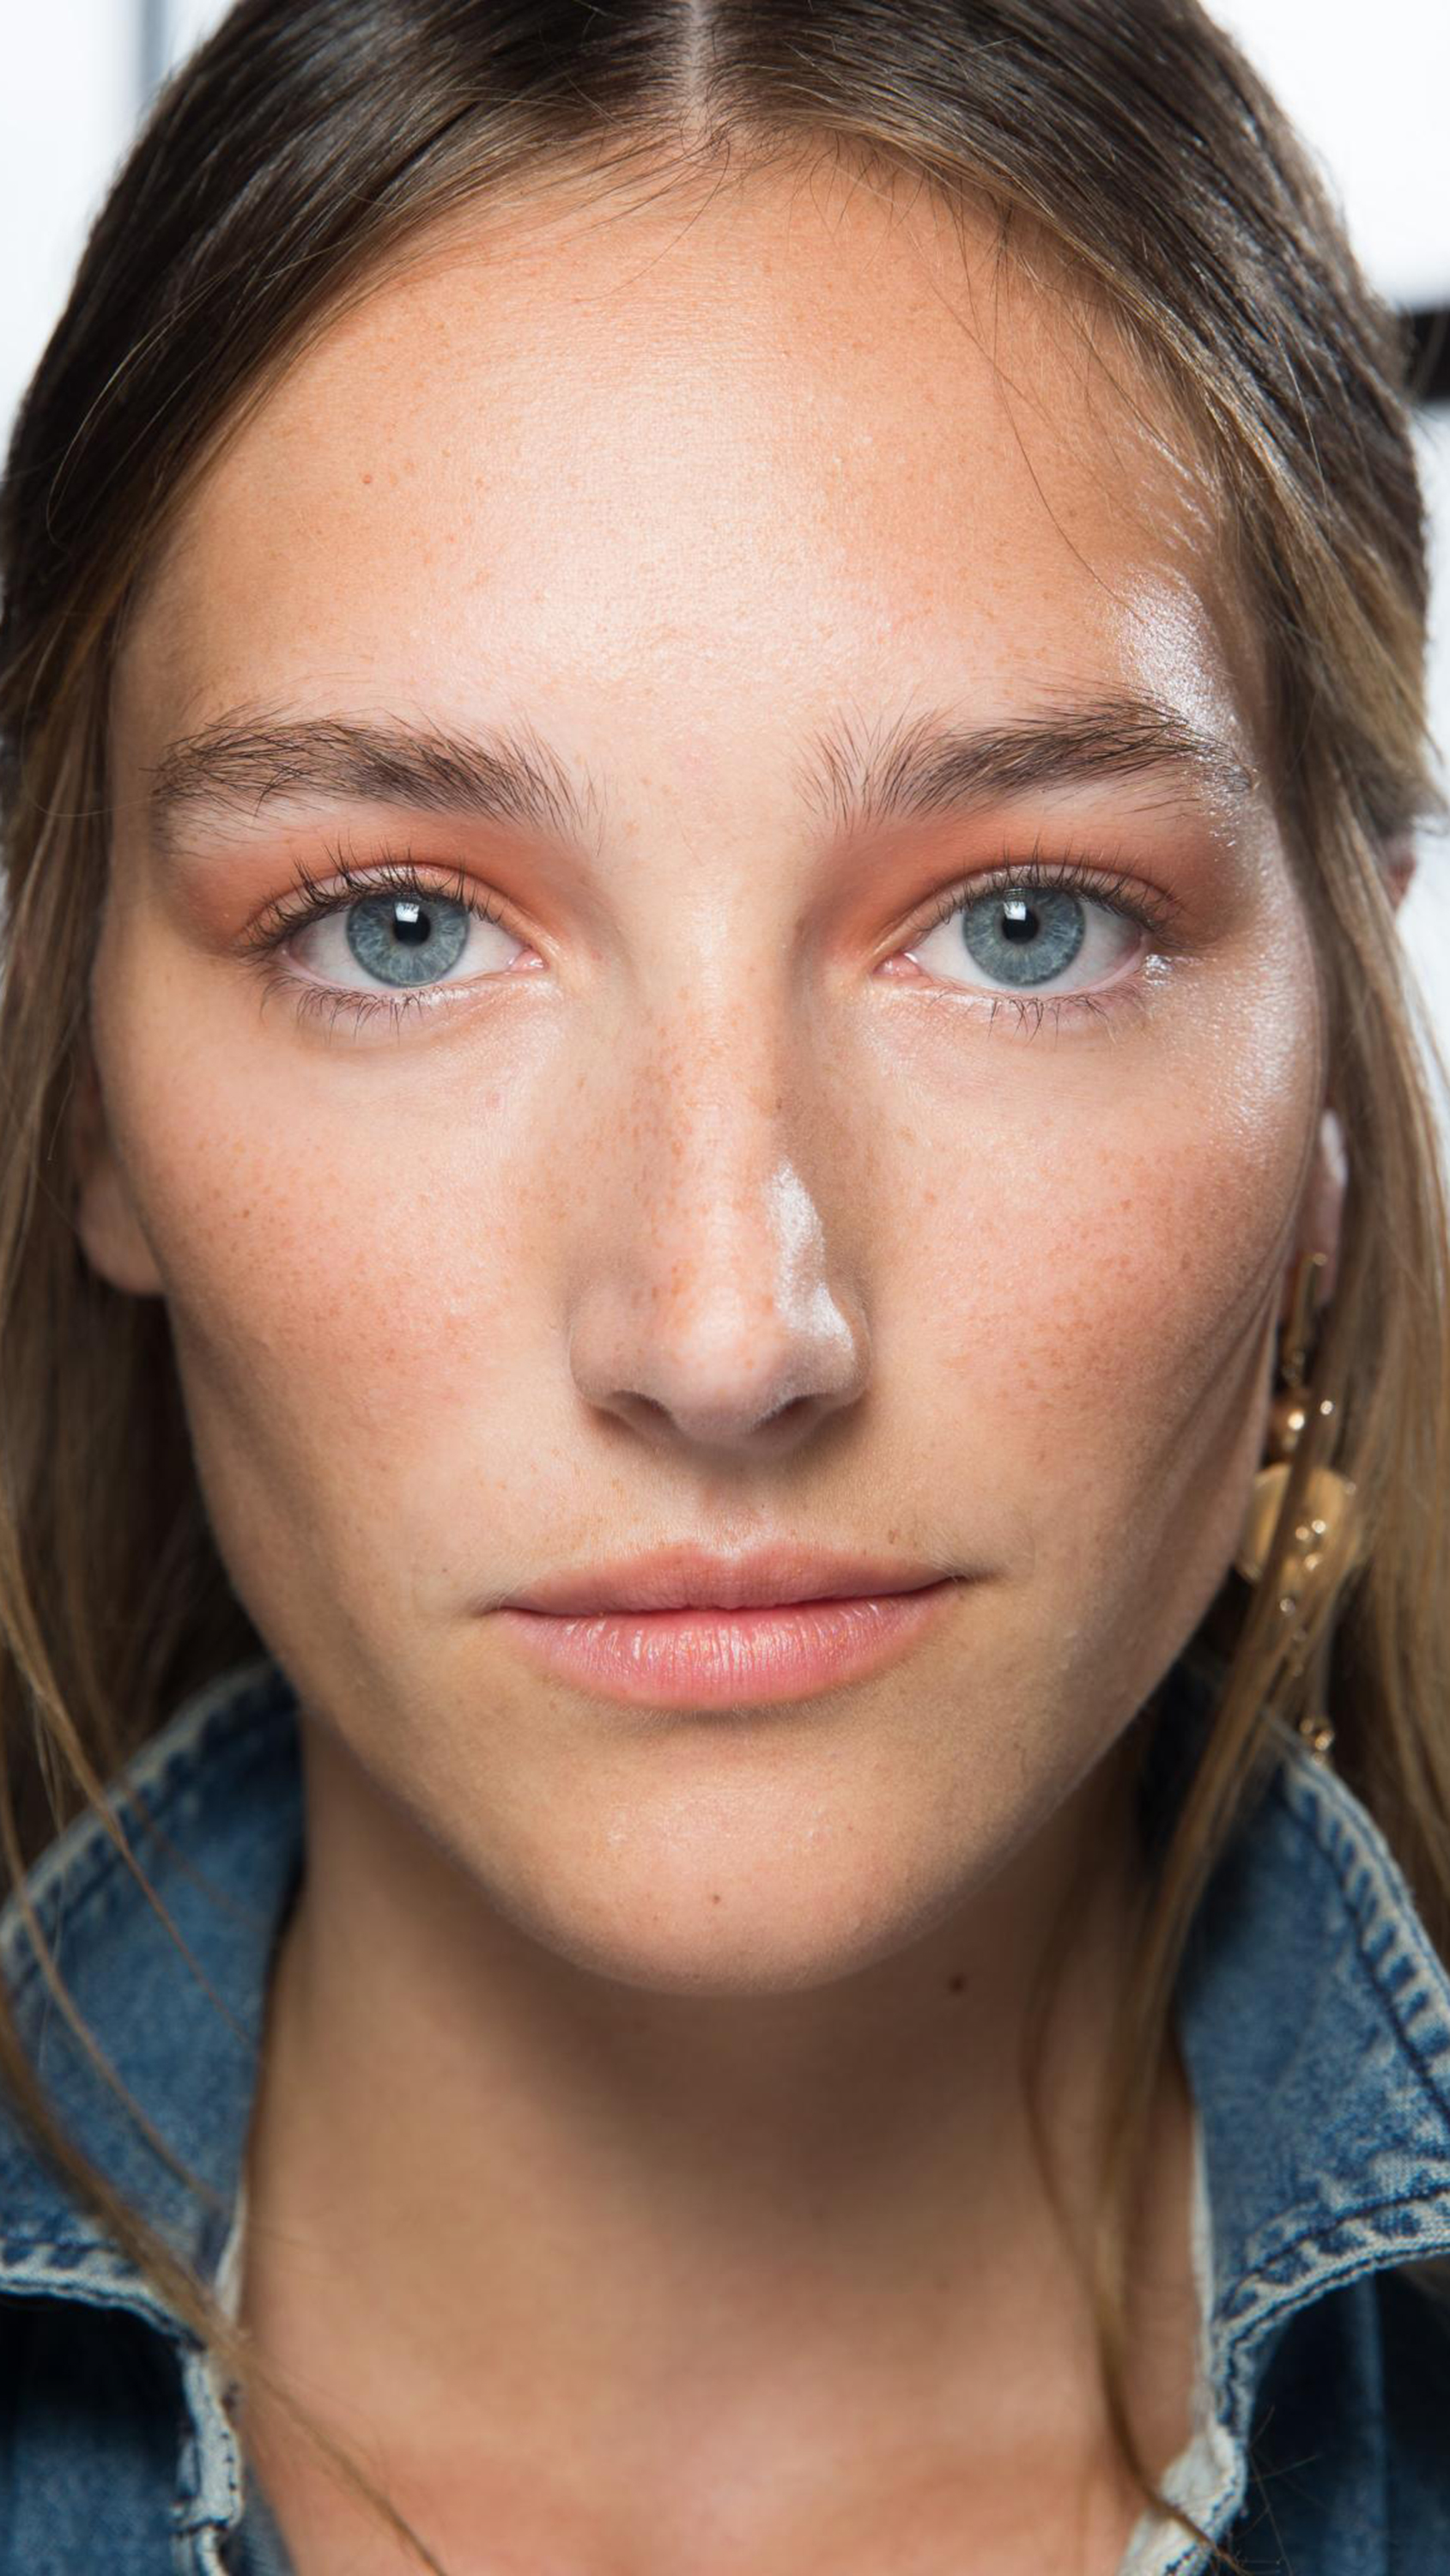 Red skin doesn't discriminate – no matter your age, skin type or gender, anyone can go from fresh faced to flush faced. While it's easy to camouflage redness with foundations and concealers, this doesn't stop it from occurring. Here are 11 products that will treat the issue itself and ensure that you don't look like you've just stepped out of a two-hour spin class.